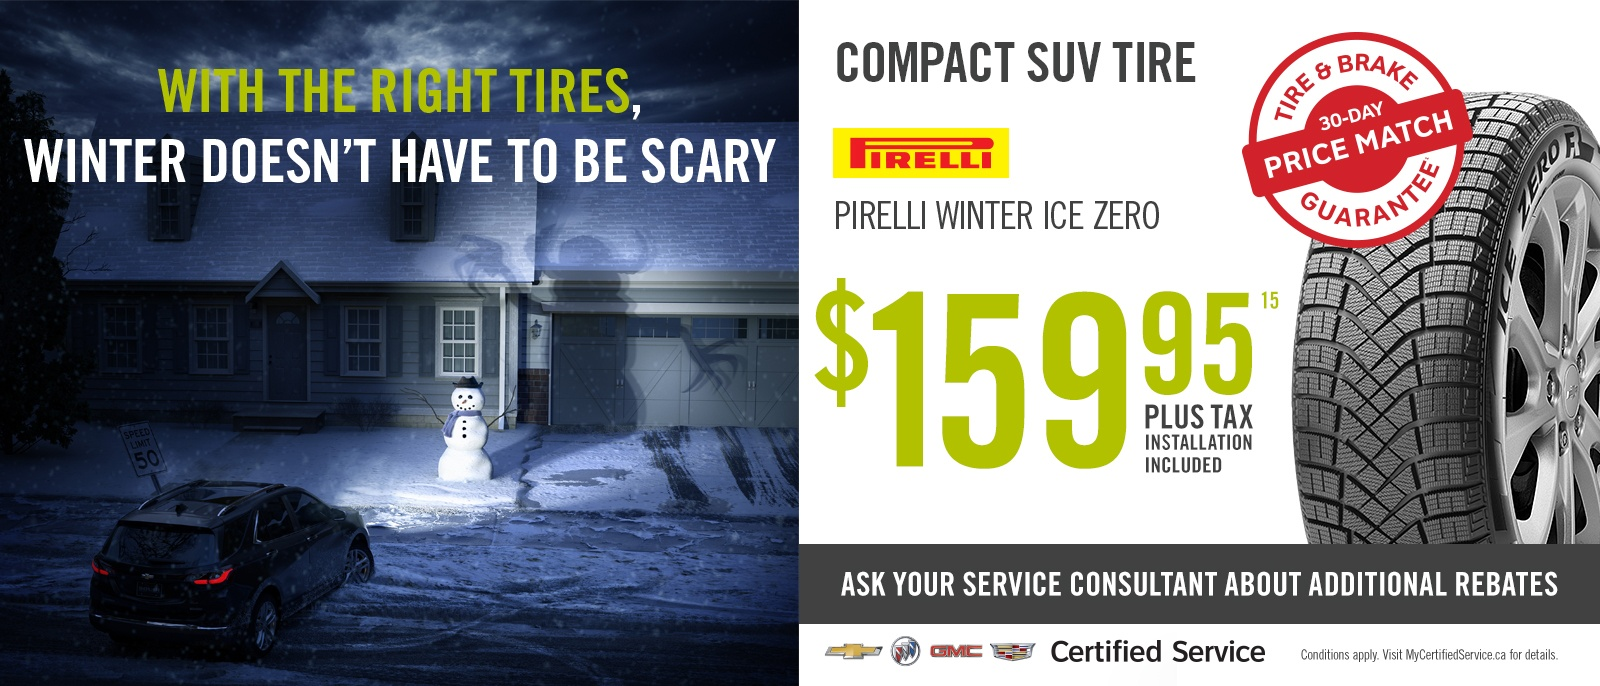 Compact SUV Tires